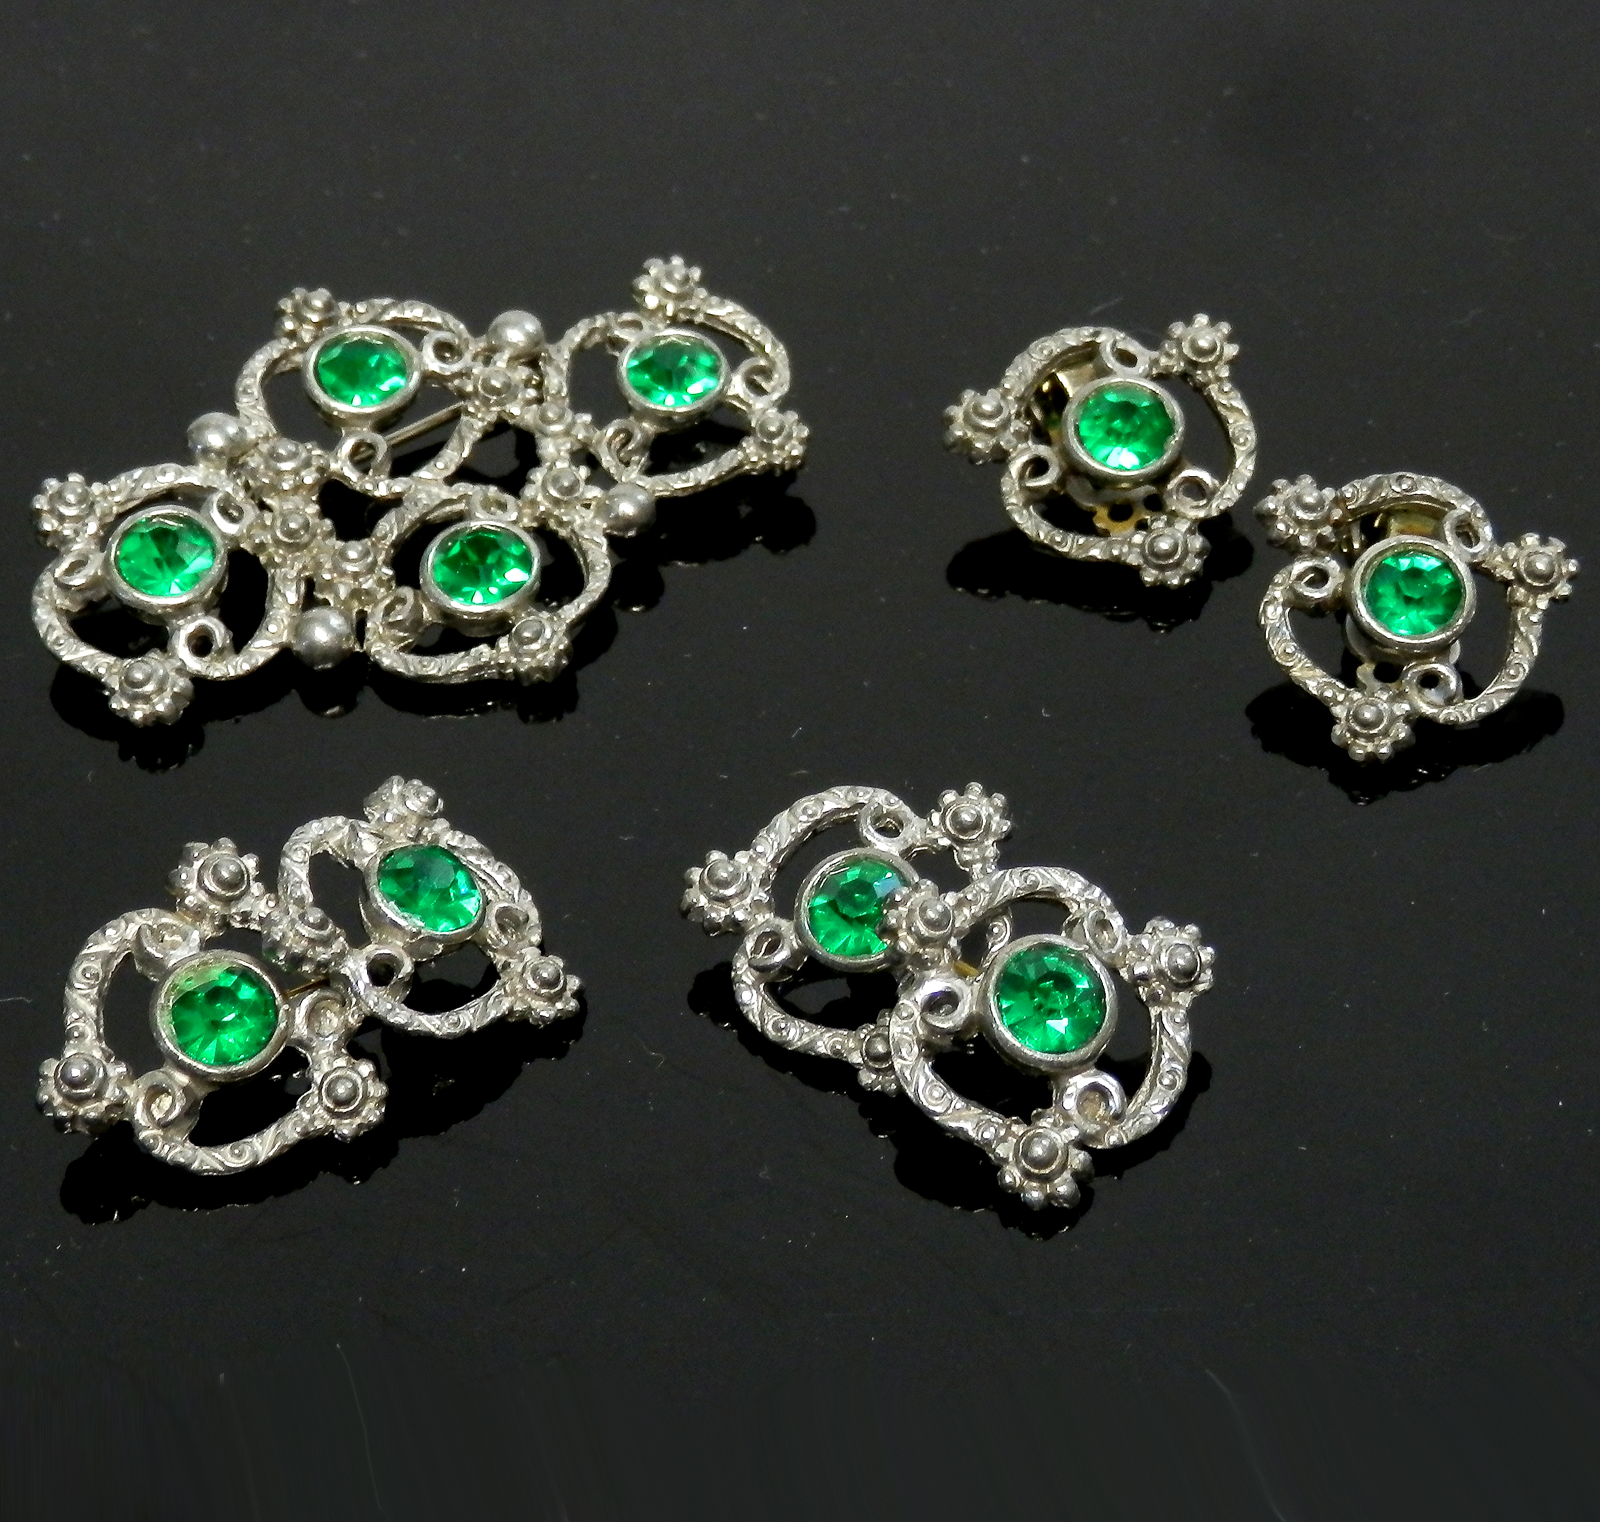 Vintage Rhinestone Earrings, Brooch, Cuff Links Demi Set Green Crystals Unsigned